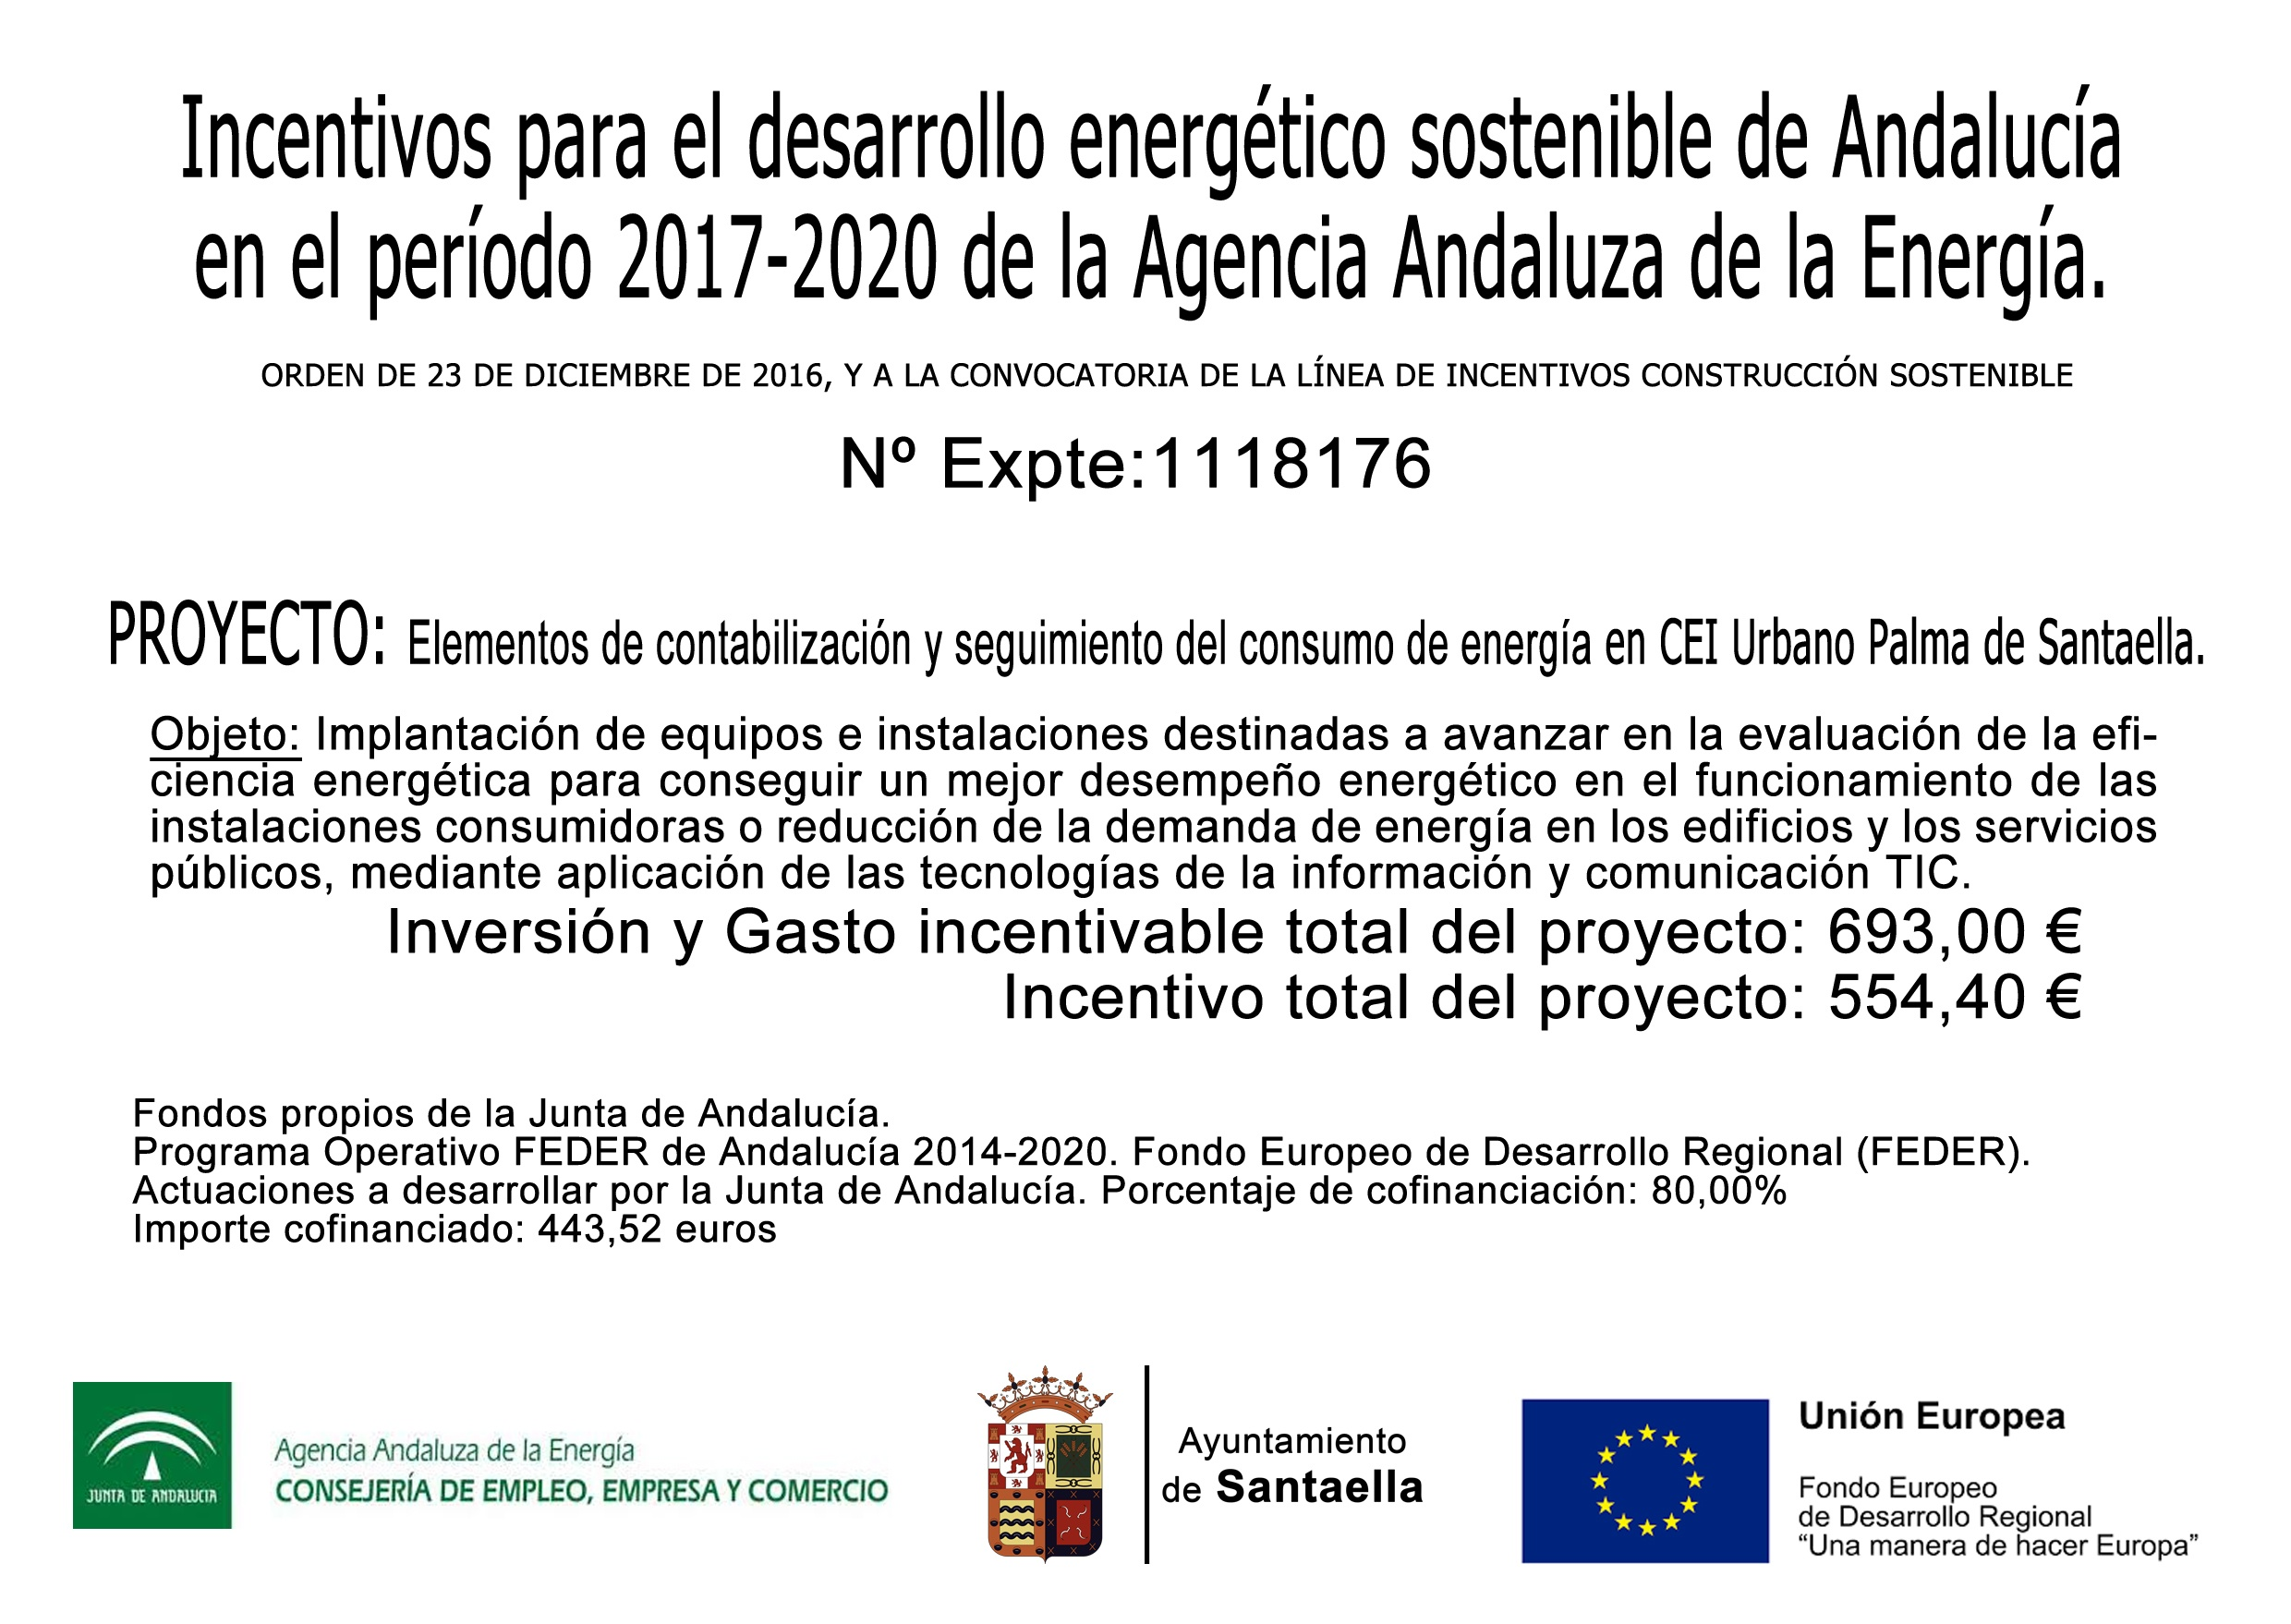 Cartel incentivos dearrollo energético sostenible expediente 1118176